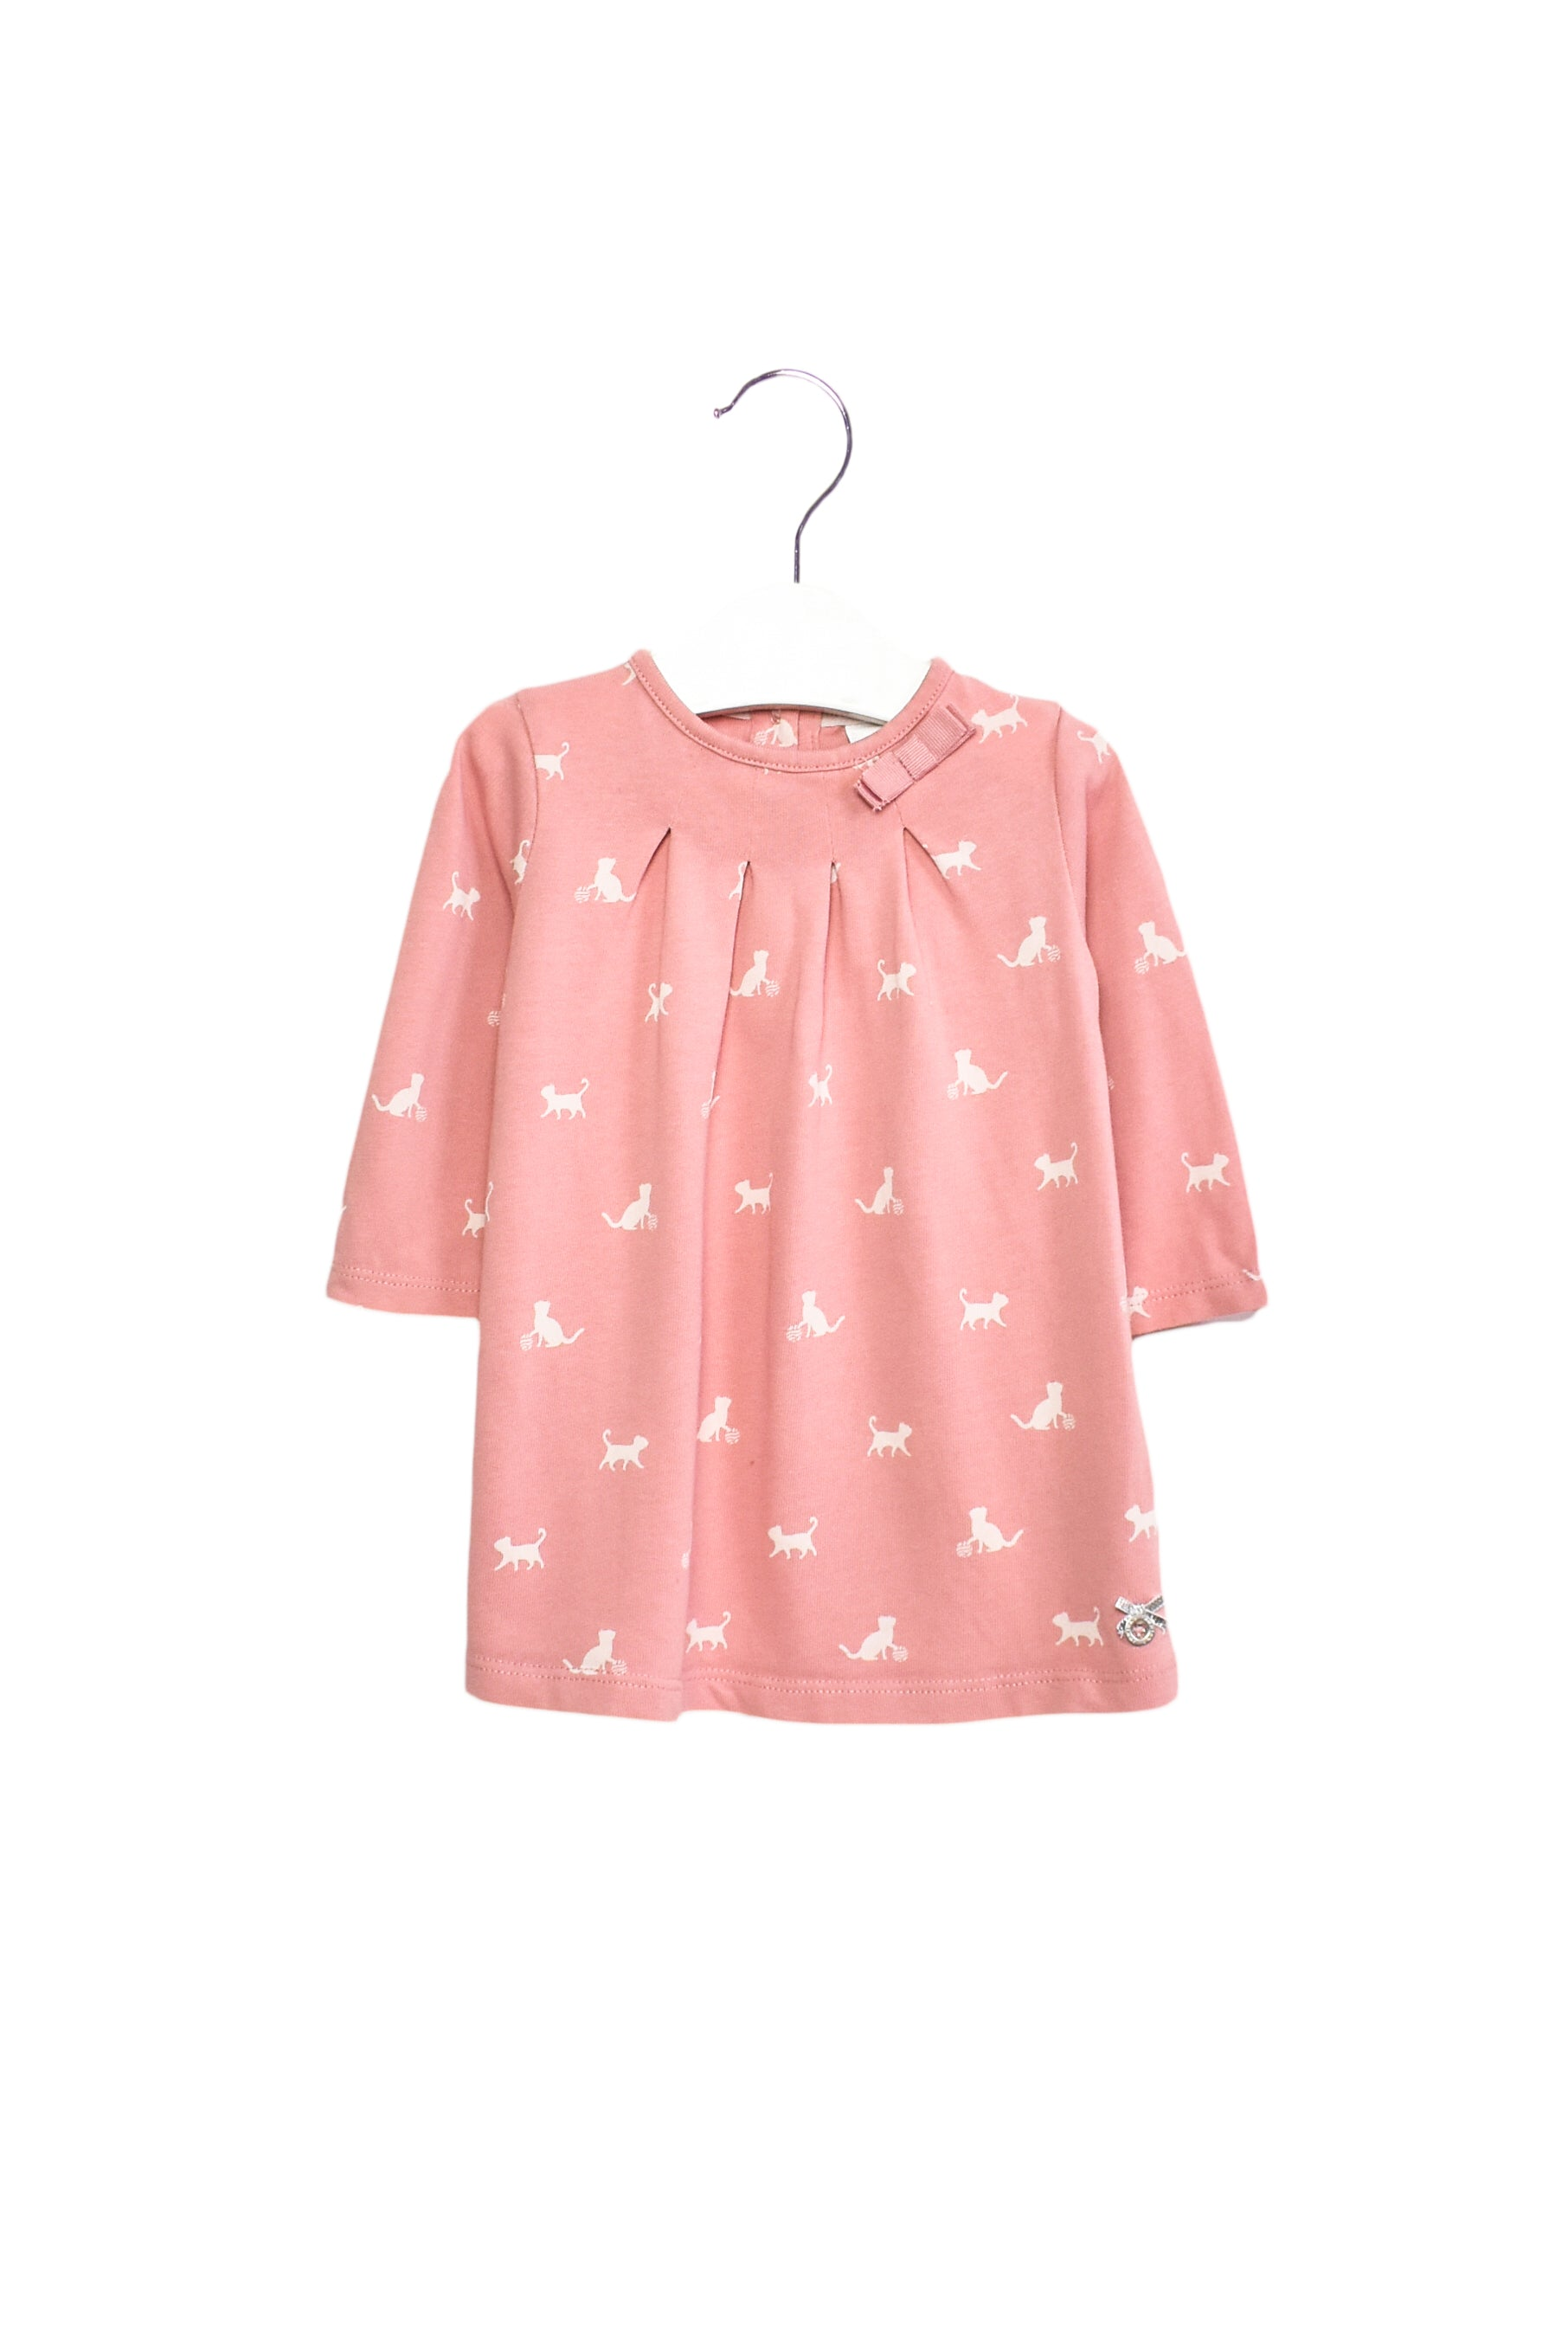 10014003 J by Jasper Conran Baby ~ Dress 3-6M at Retykle